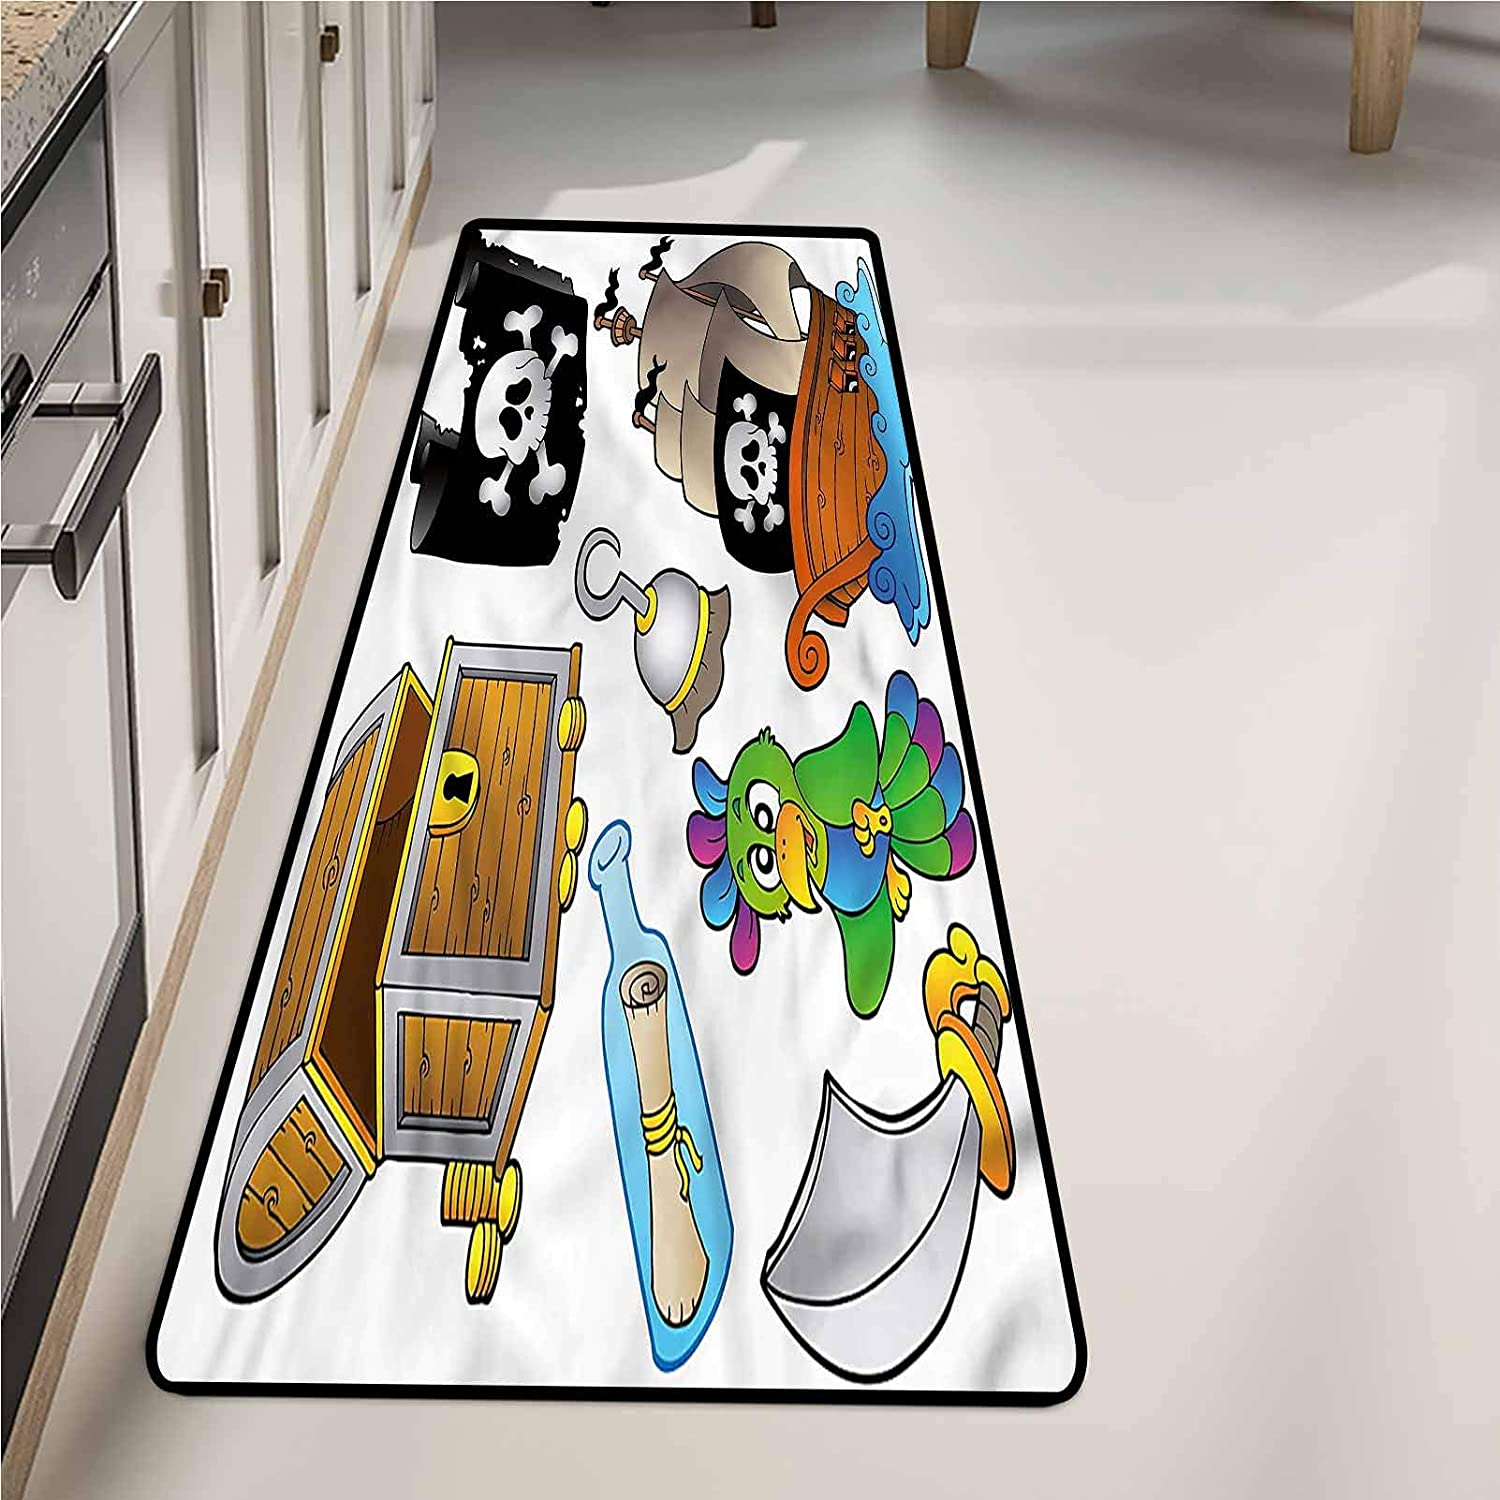 Bathroom Mats 20 x 48 Inch, Pirate Jolly Roger Flag Ship Washable Area Rugs